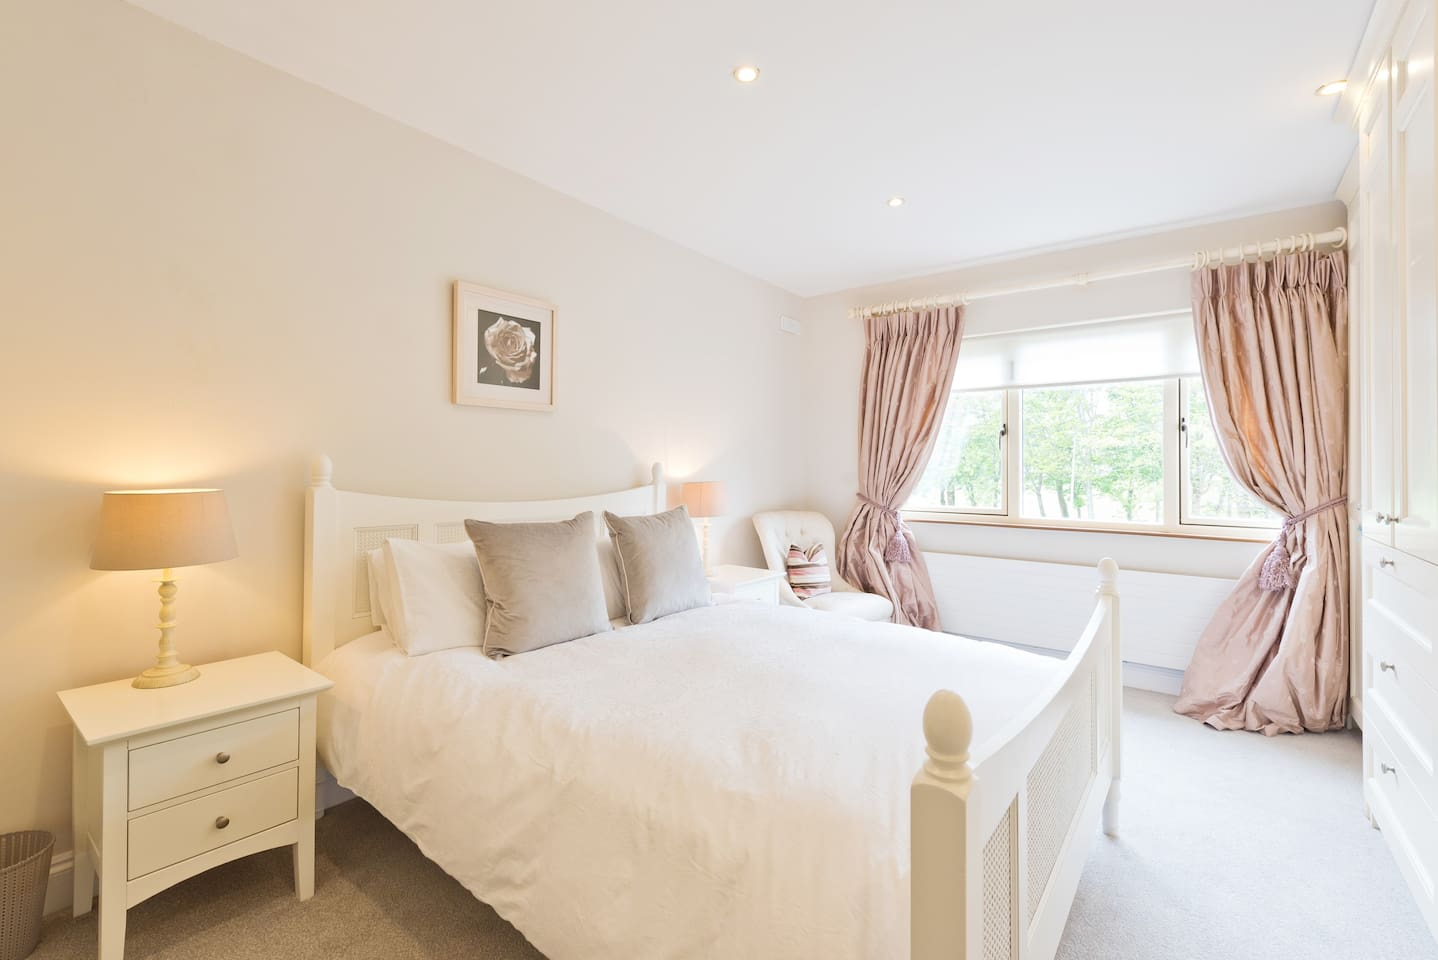 Luxurious large refurbished room in great area!